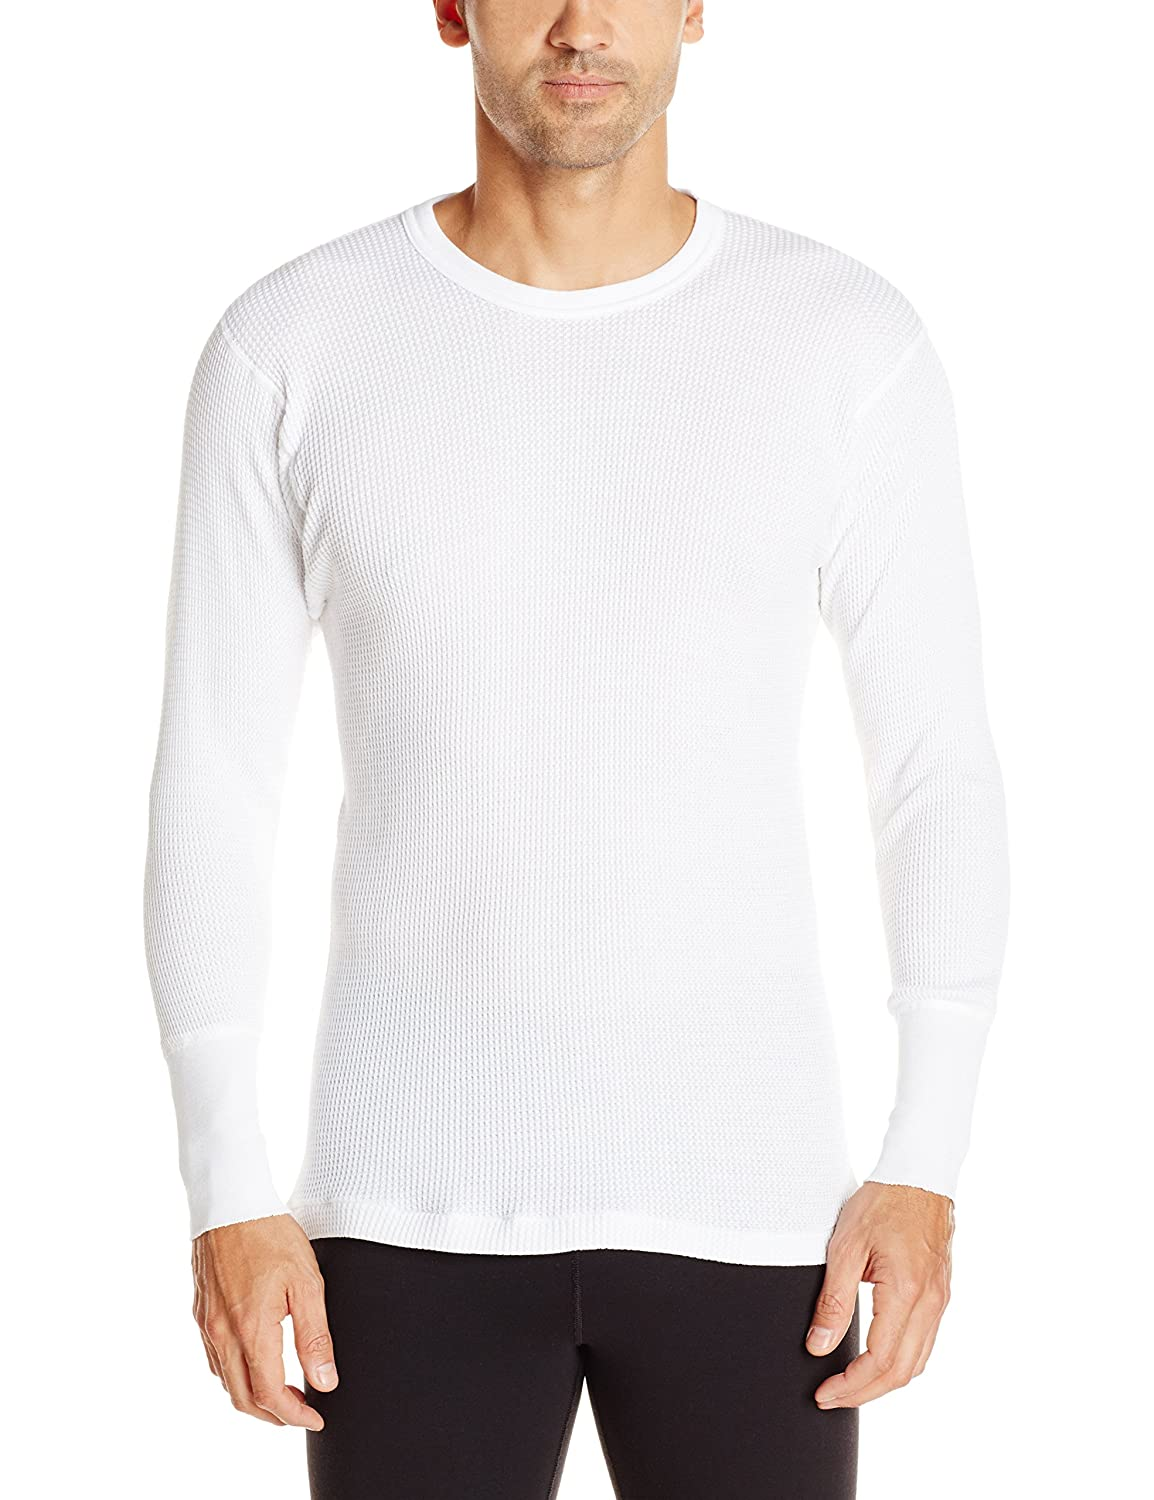 4f26214e2ce3d Stanfield s Men s Thermal Crew Neck Long Sleeve Top  Amazon.ca  Sports    Outdoors